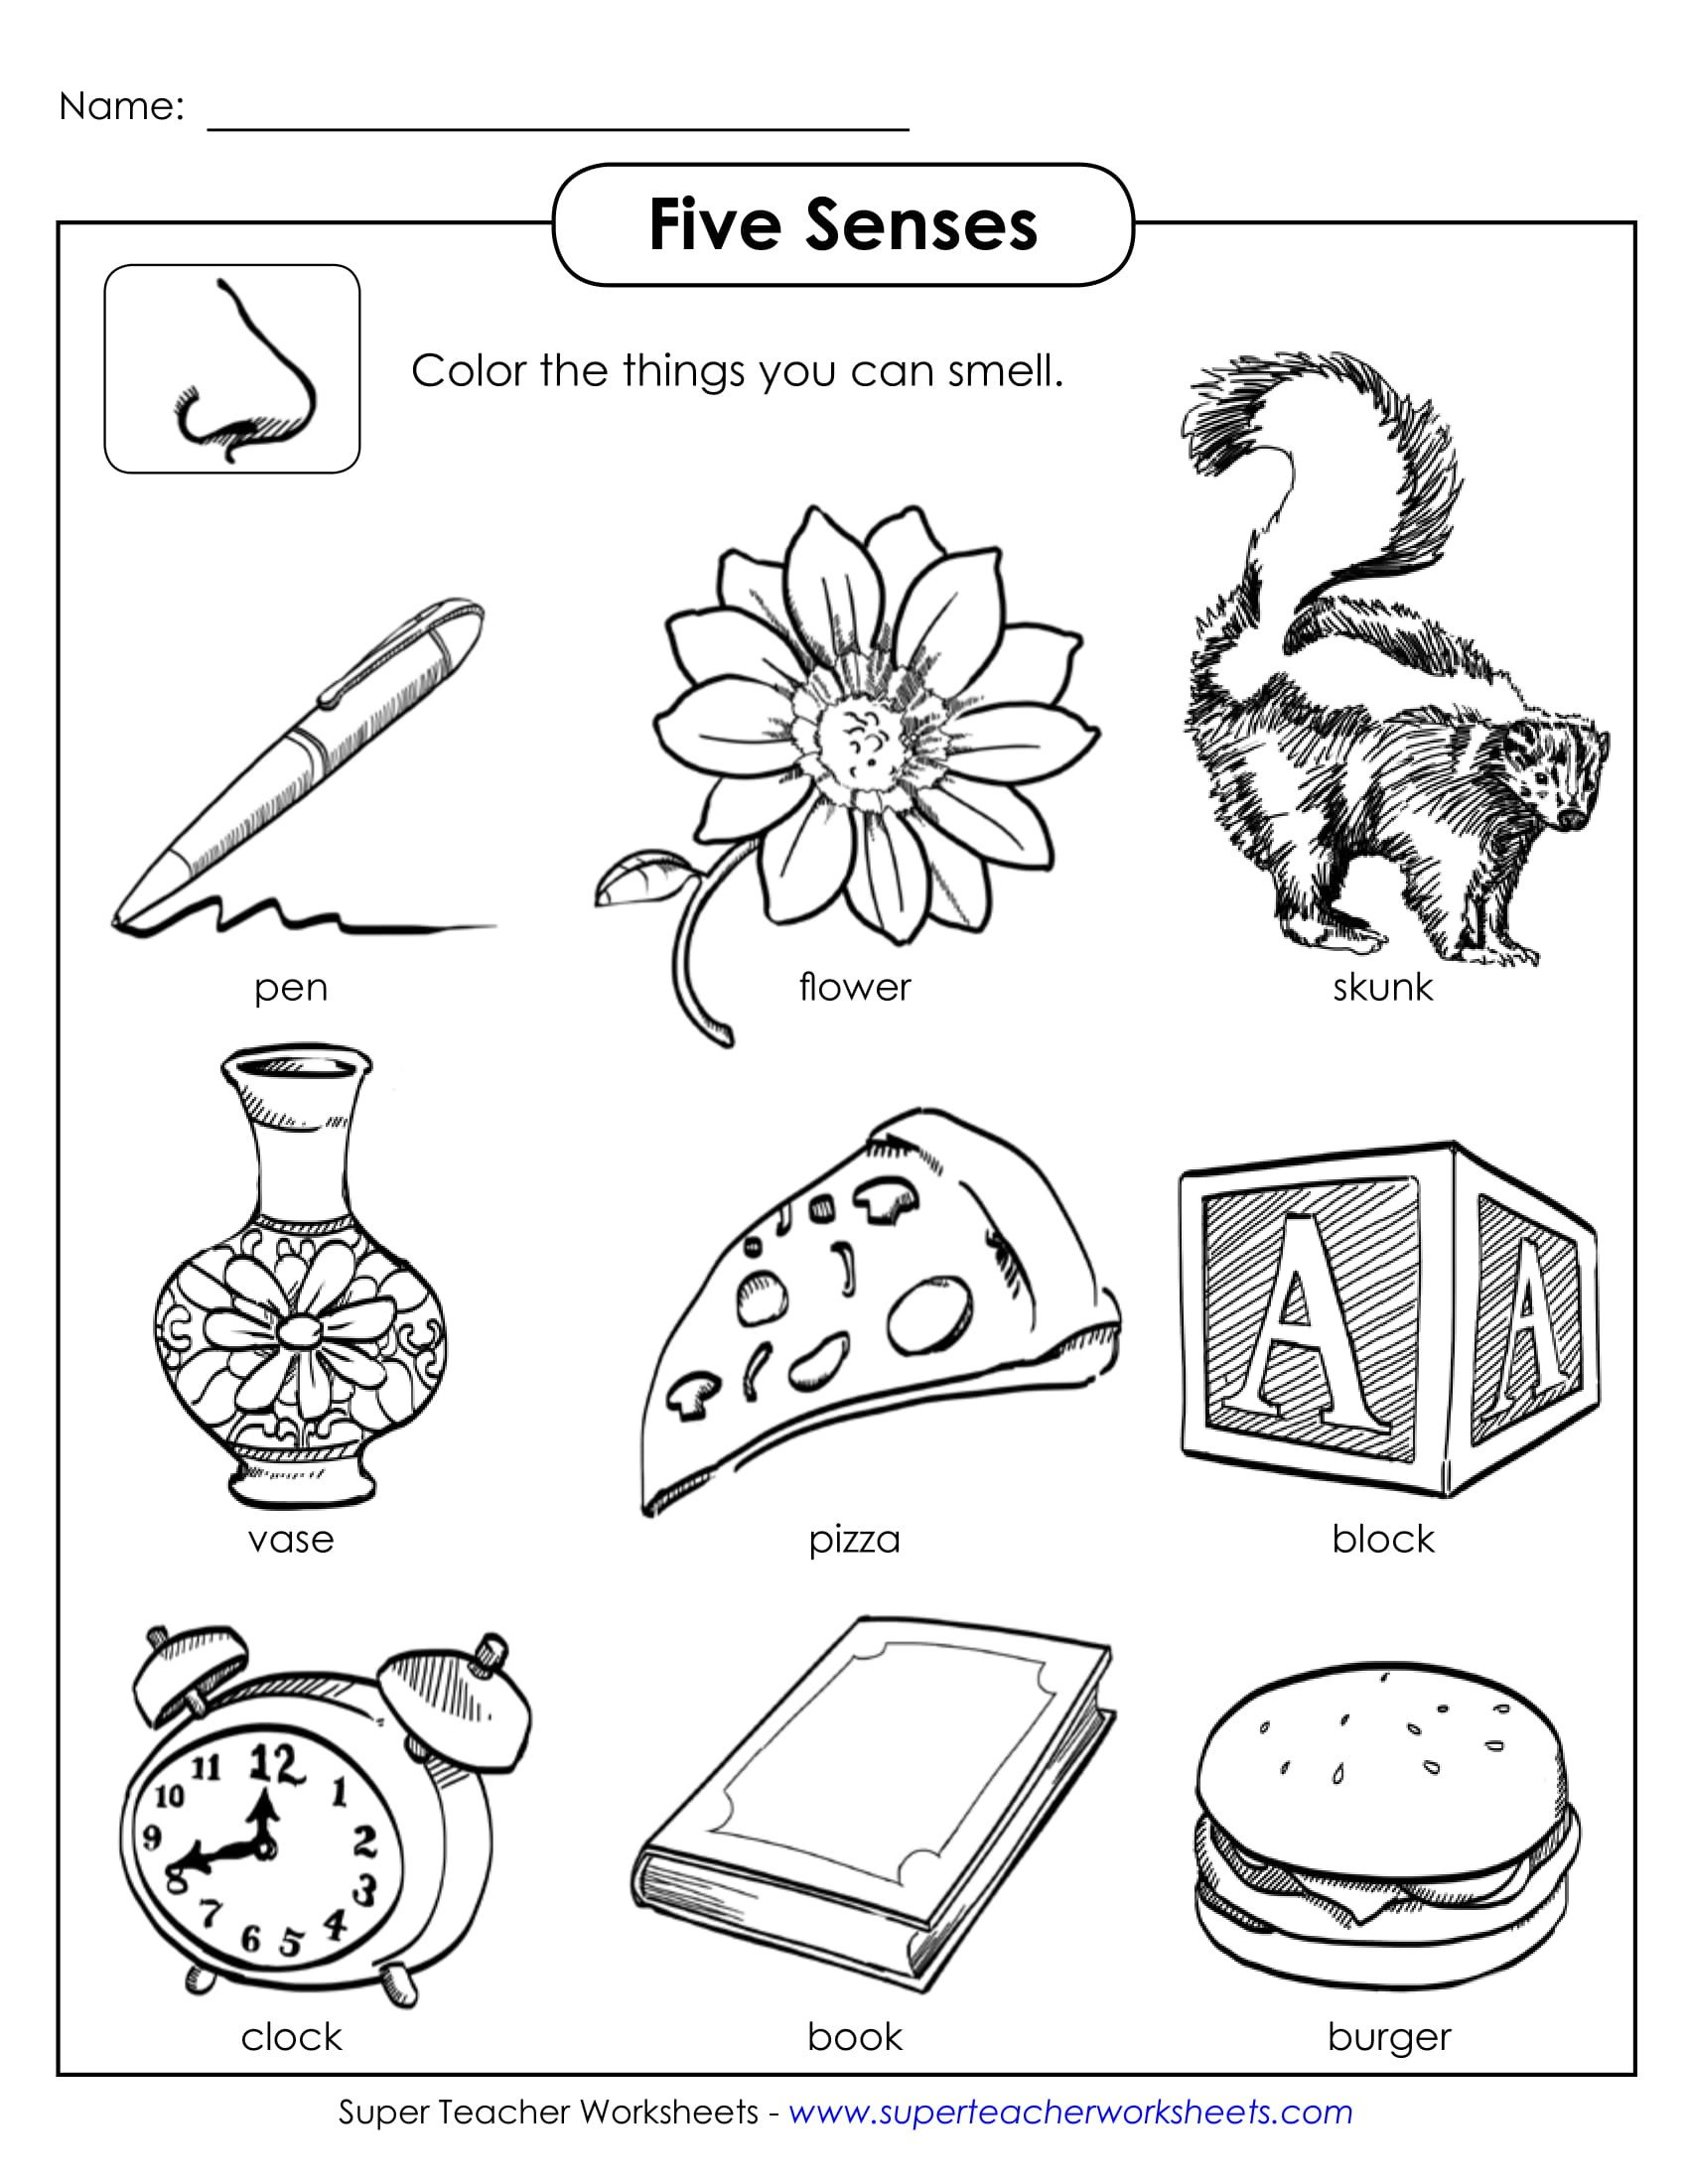 Five Senses Kindergarten Worksheet Your Sense Worksheet Printable Worksheets and Activities for